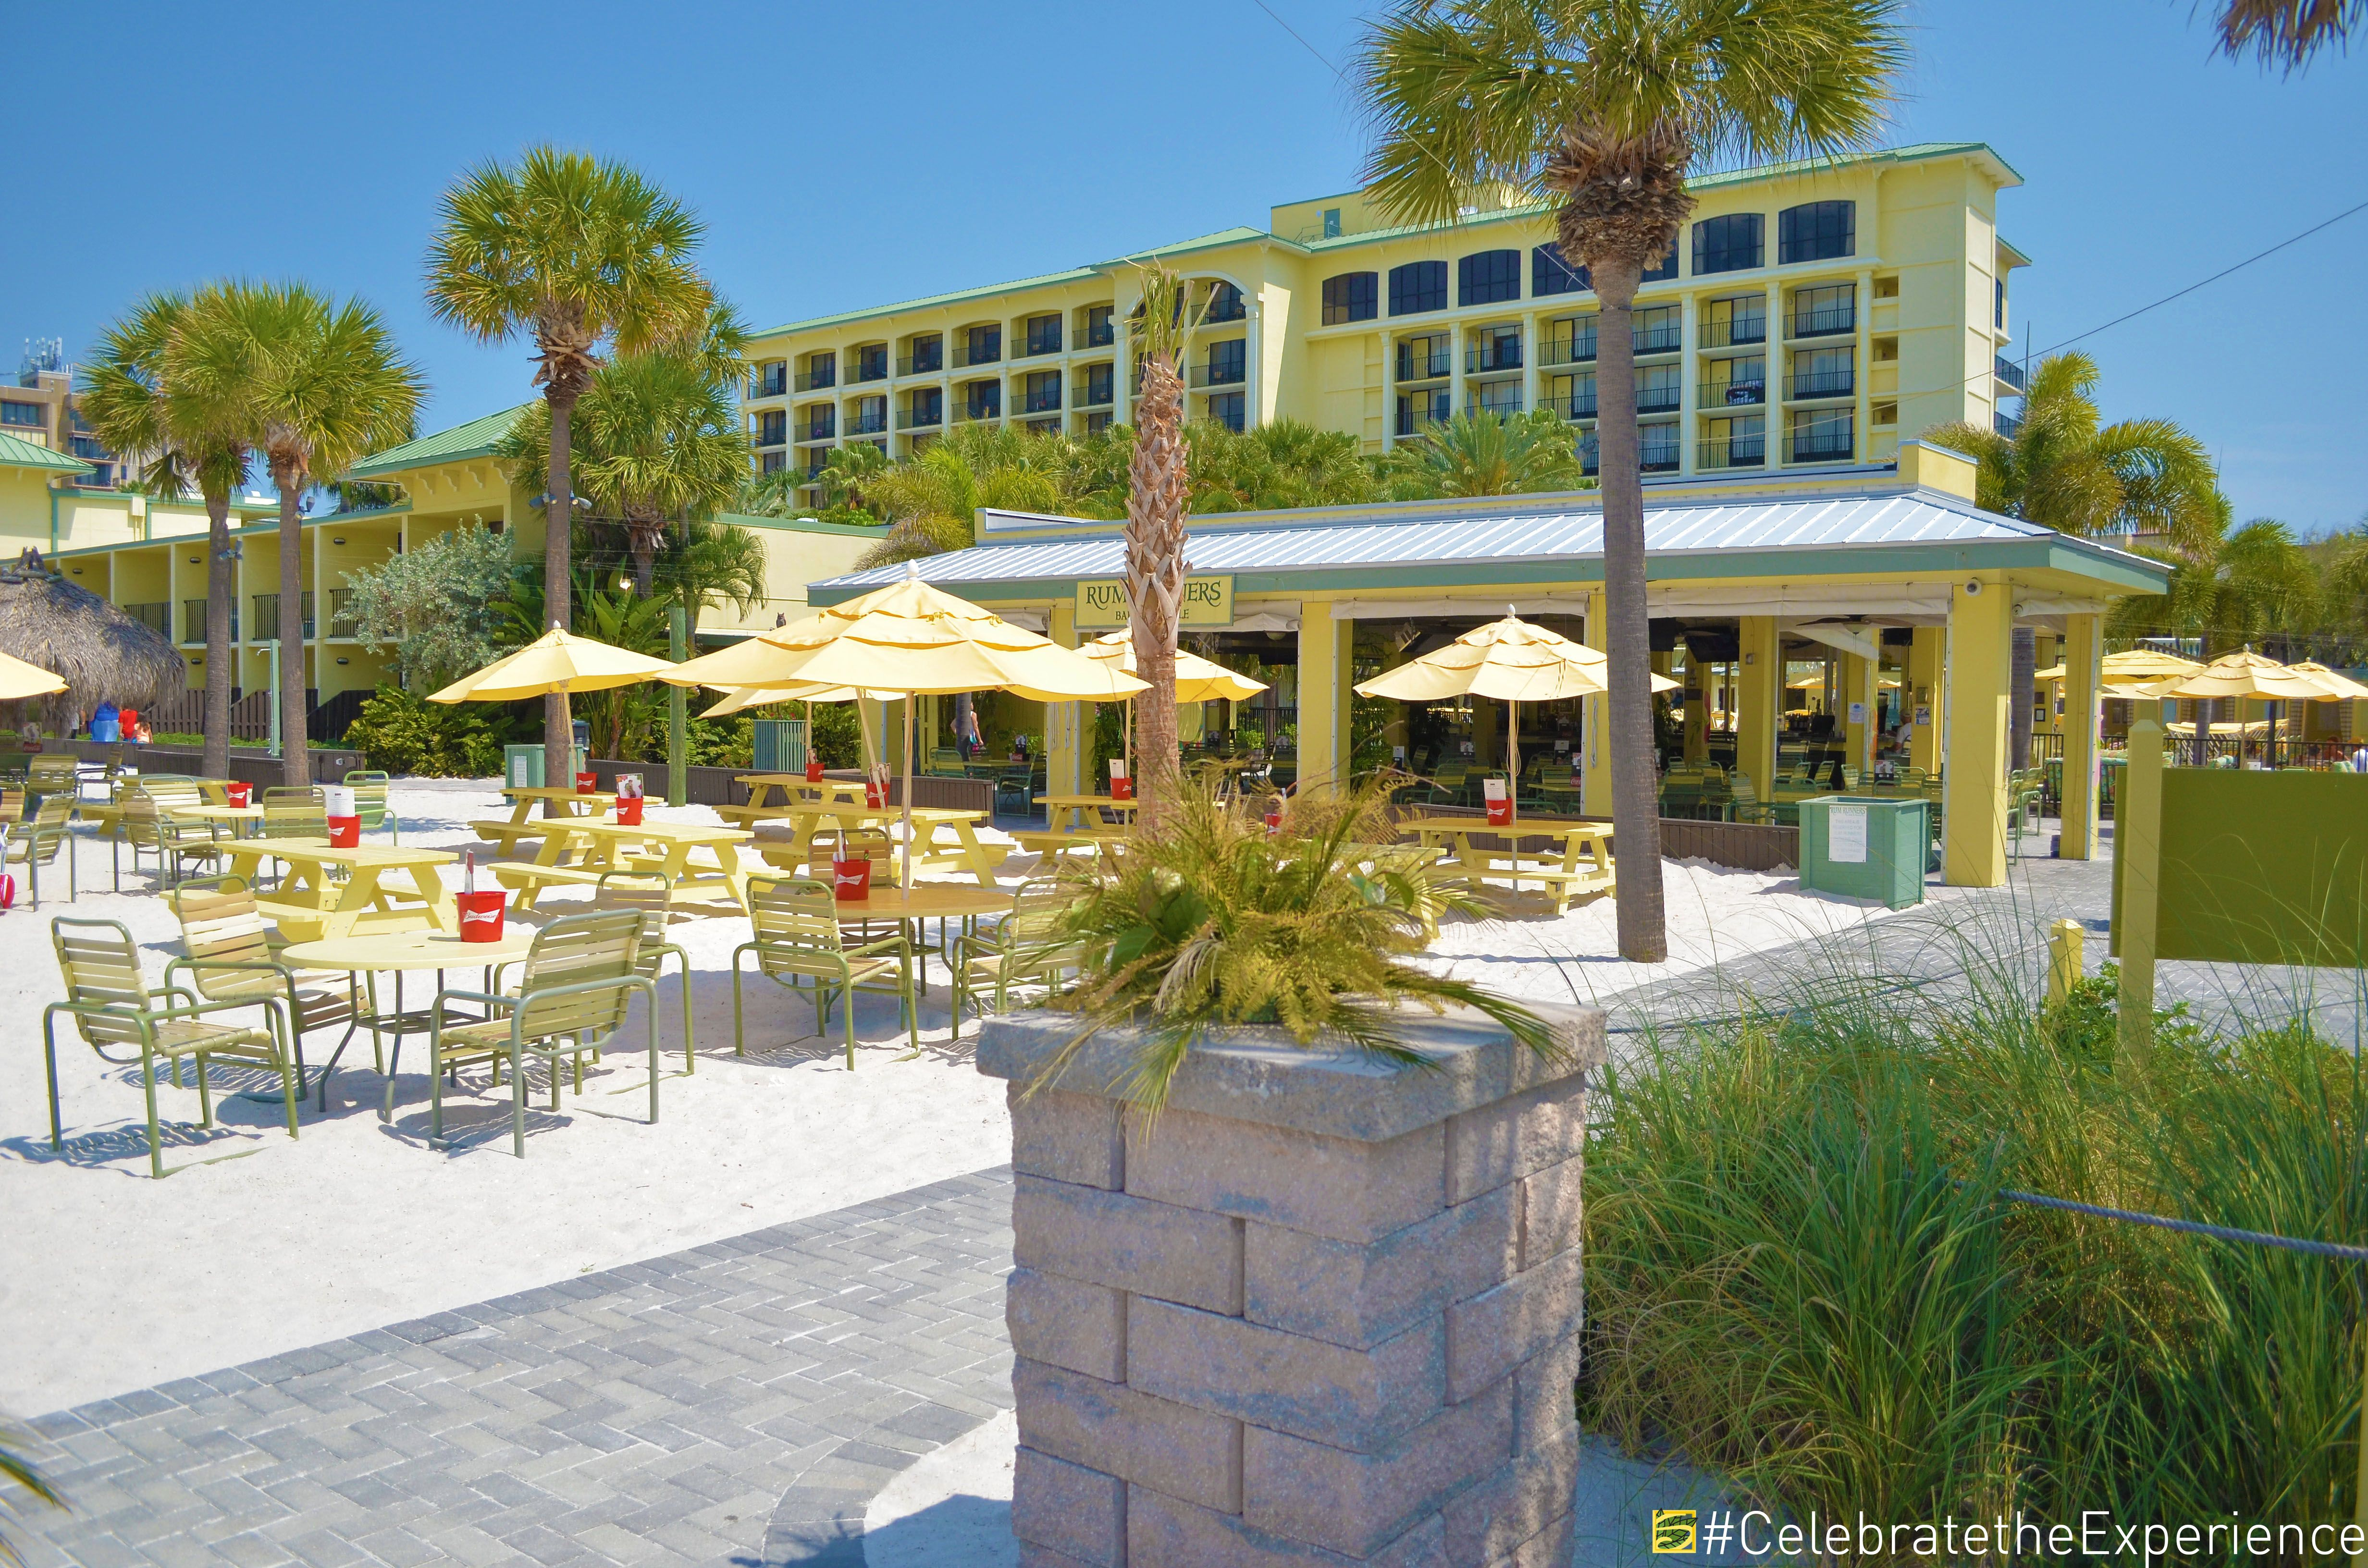 How about breakfast in the sand? HappyMonday StPeteBeach